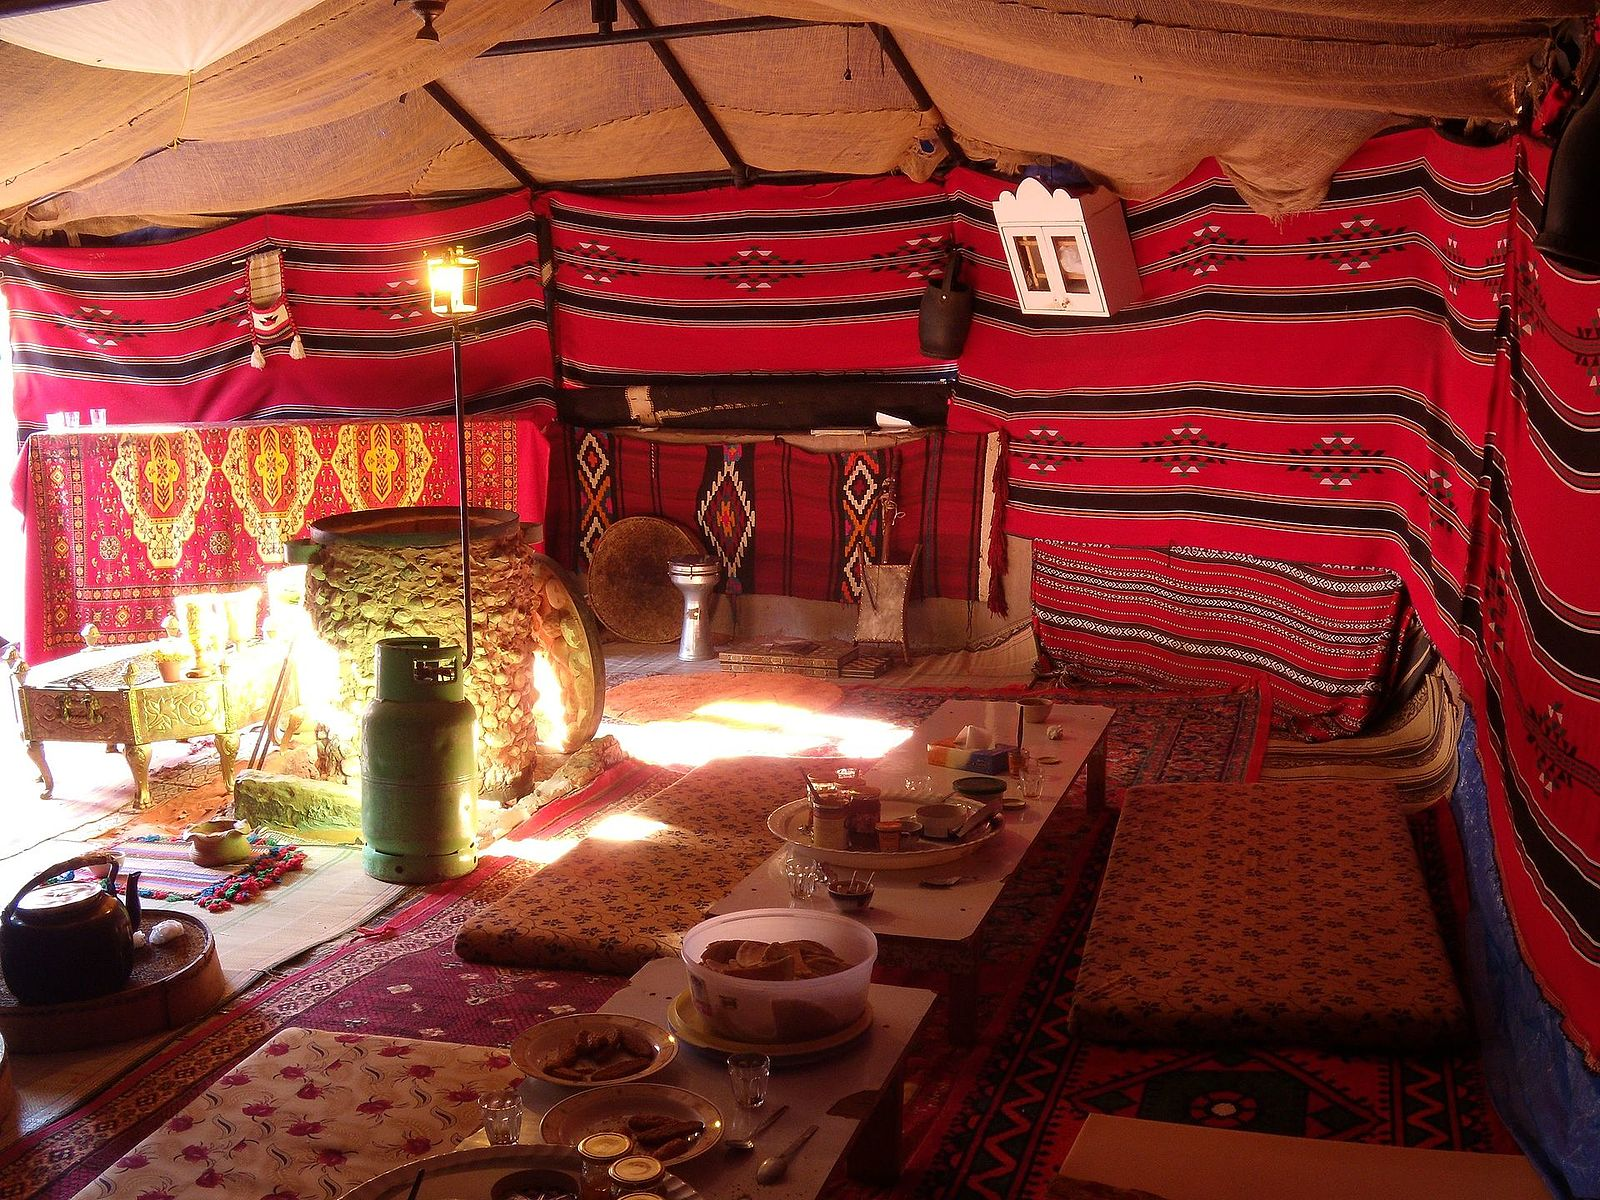 Bedouin Meditation Camp, Wadi Rum, Jordan. May 6, 2010. Photo by anagh, via panoramio.com.